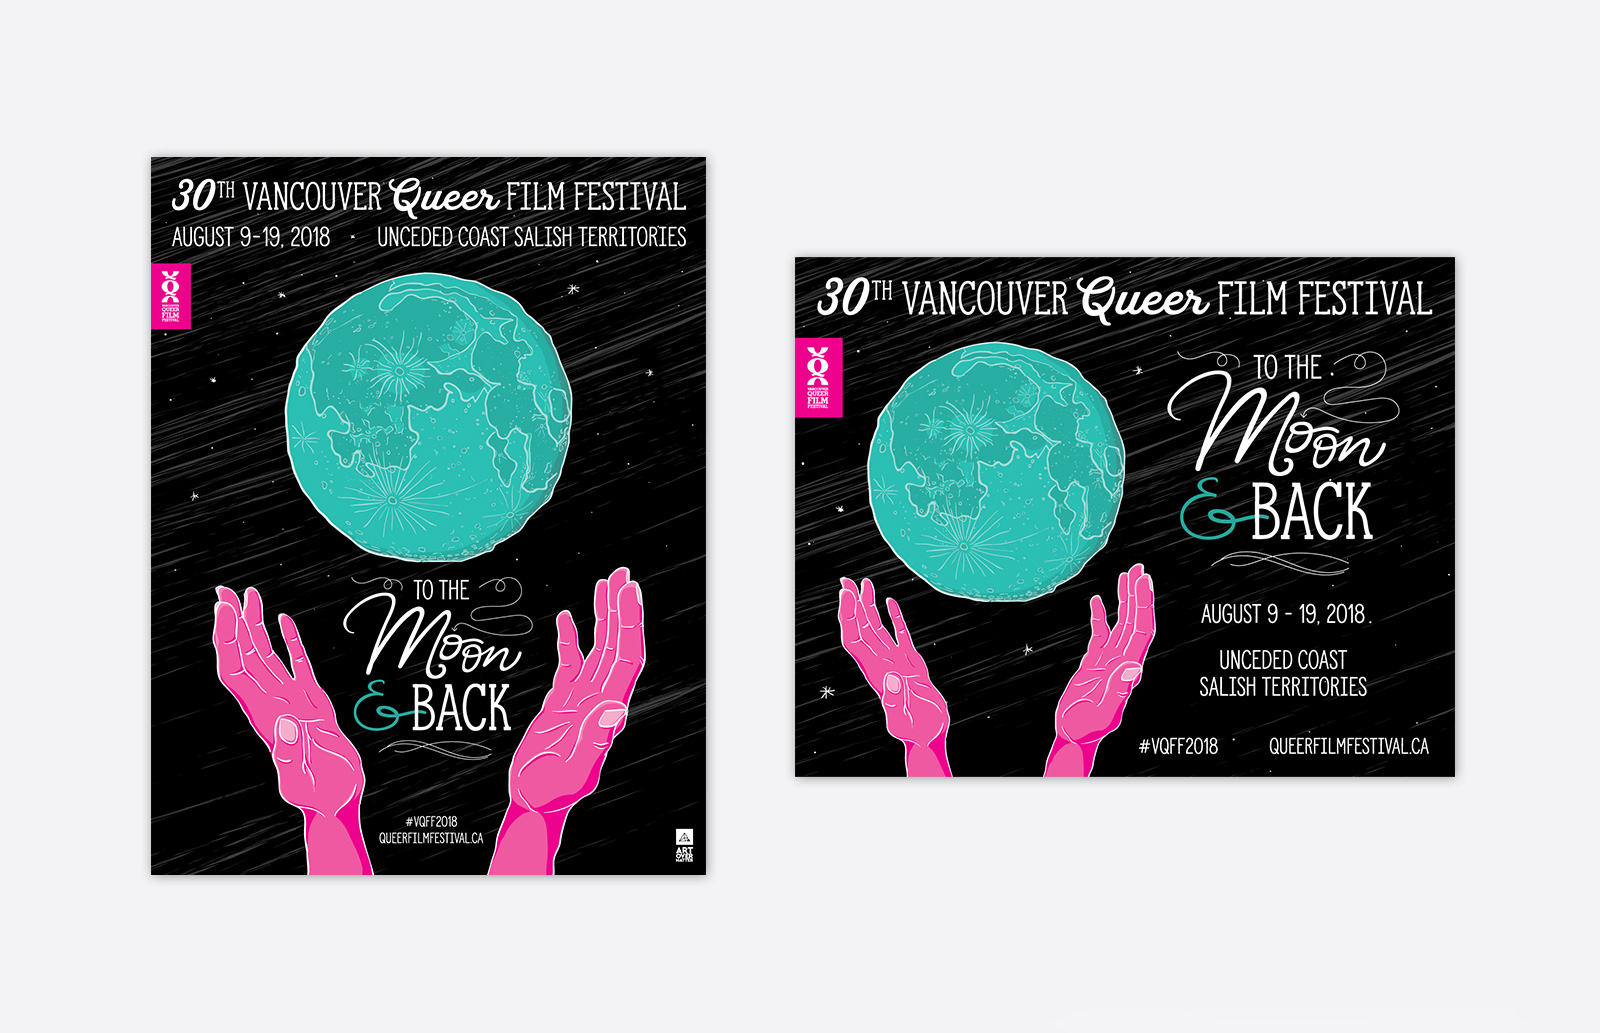 Vancouver Queer Film Festival 2018 Poster